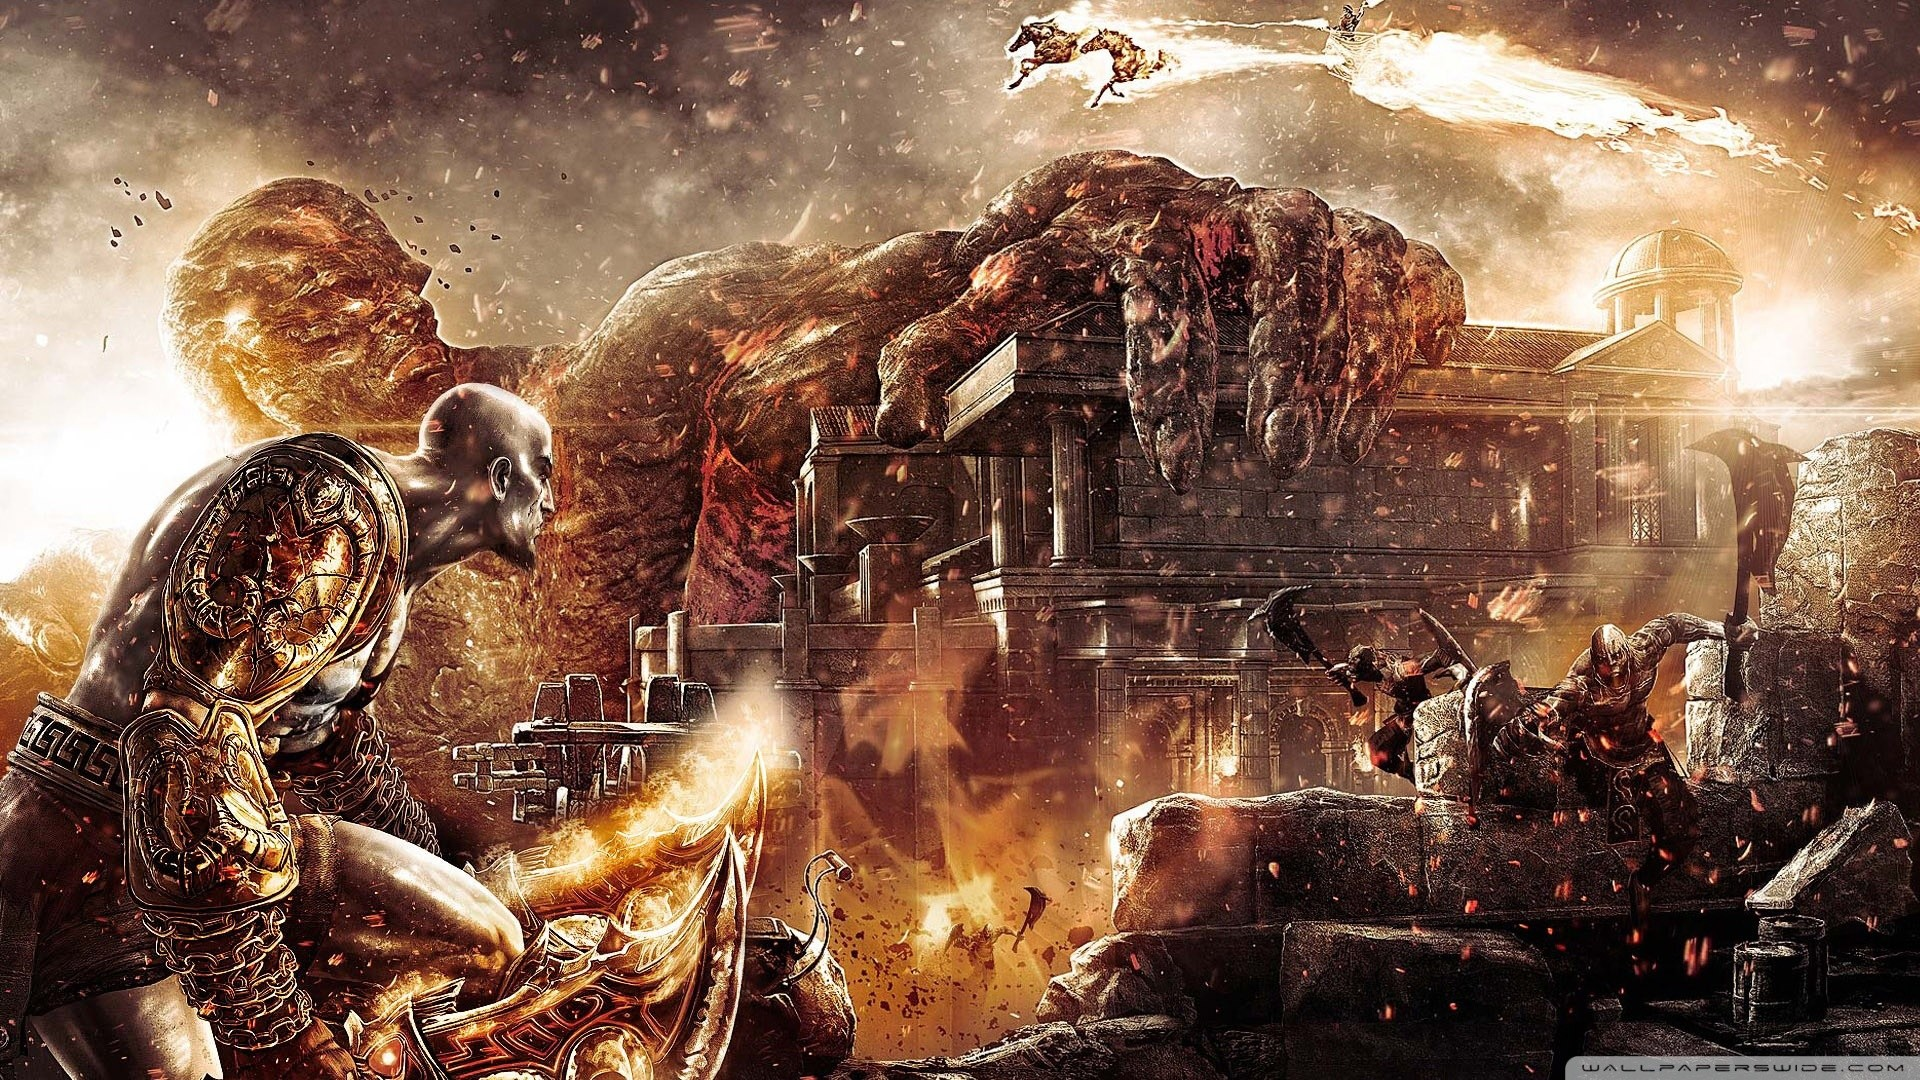 wallpaper god of war 3,action adventure game,strategy video game,cg artwork,pc game,mythology